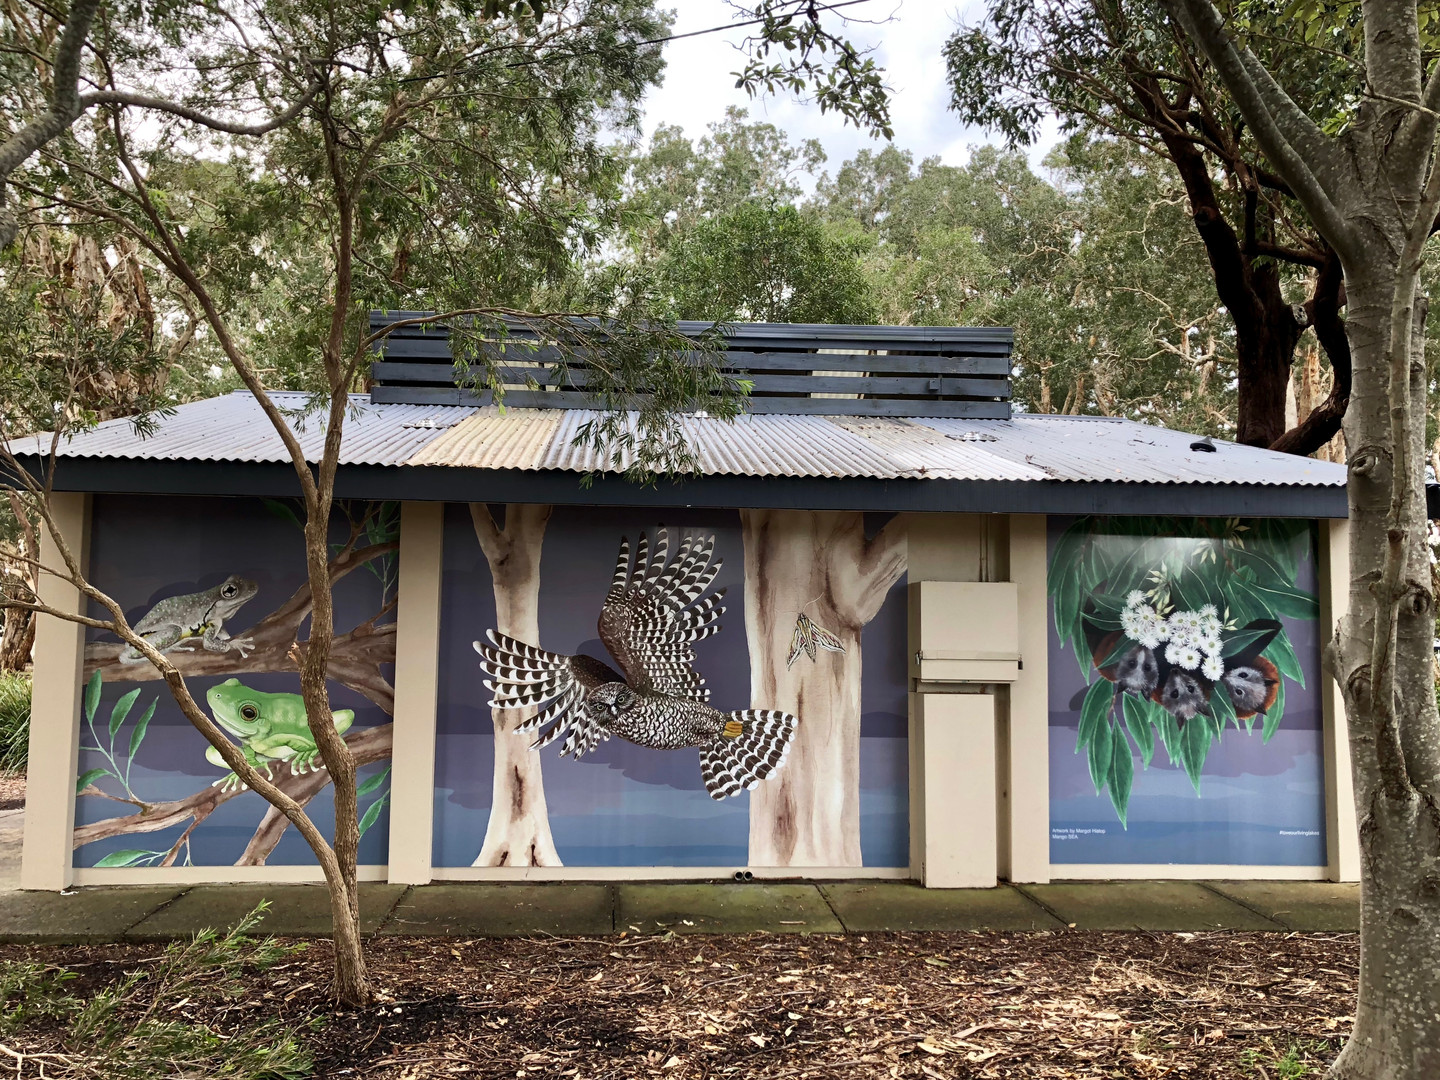 Frog, Owl and Bats panels